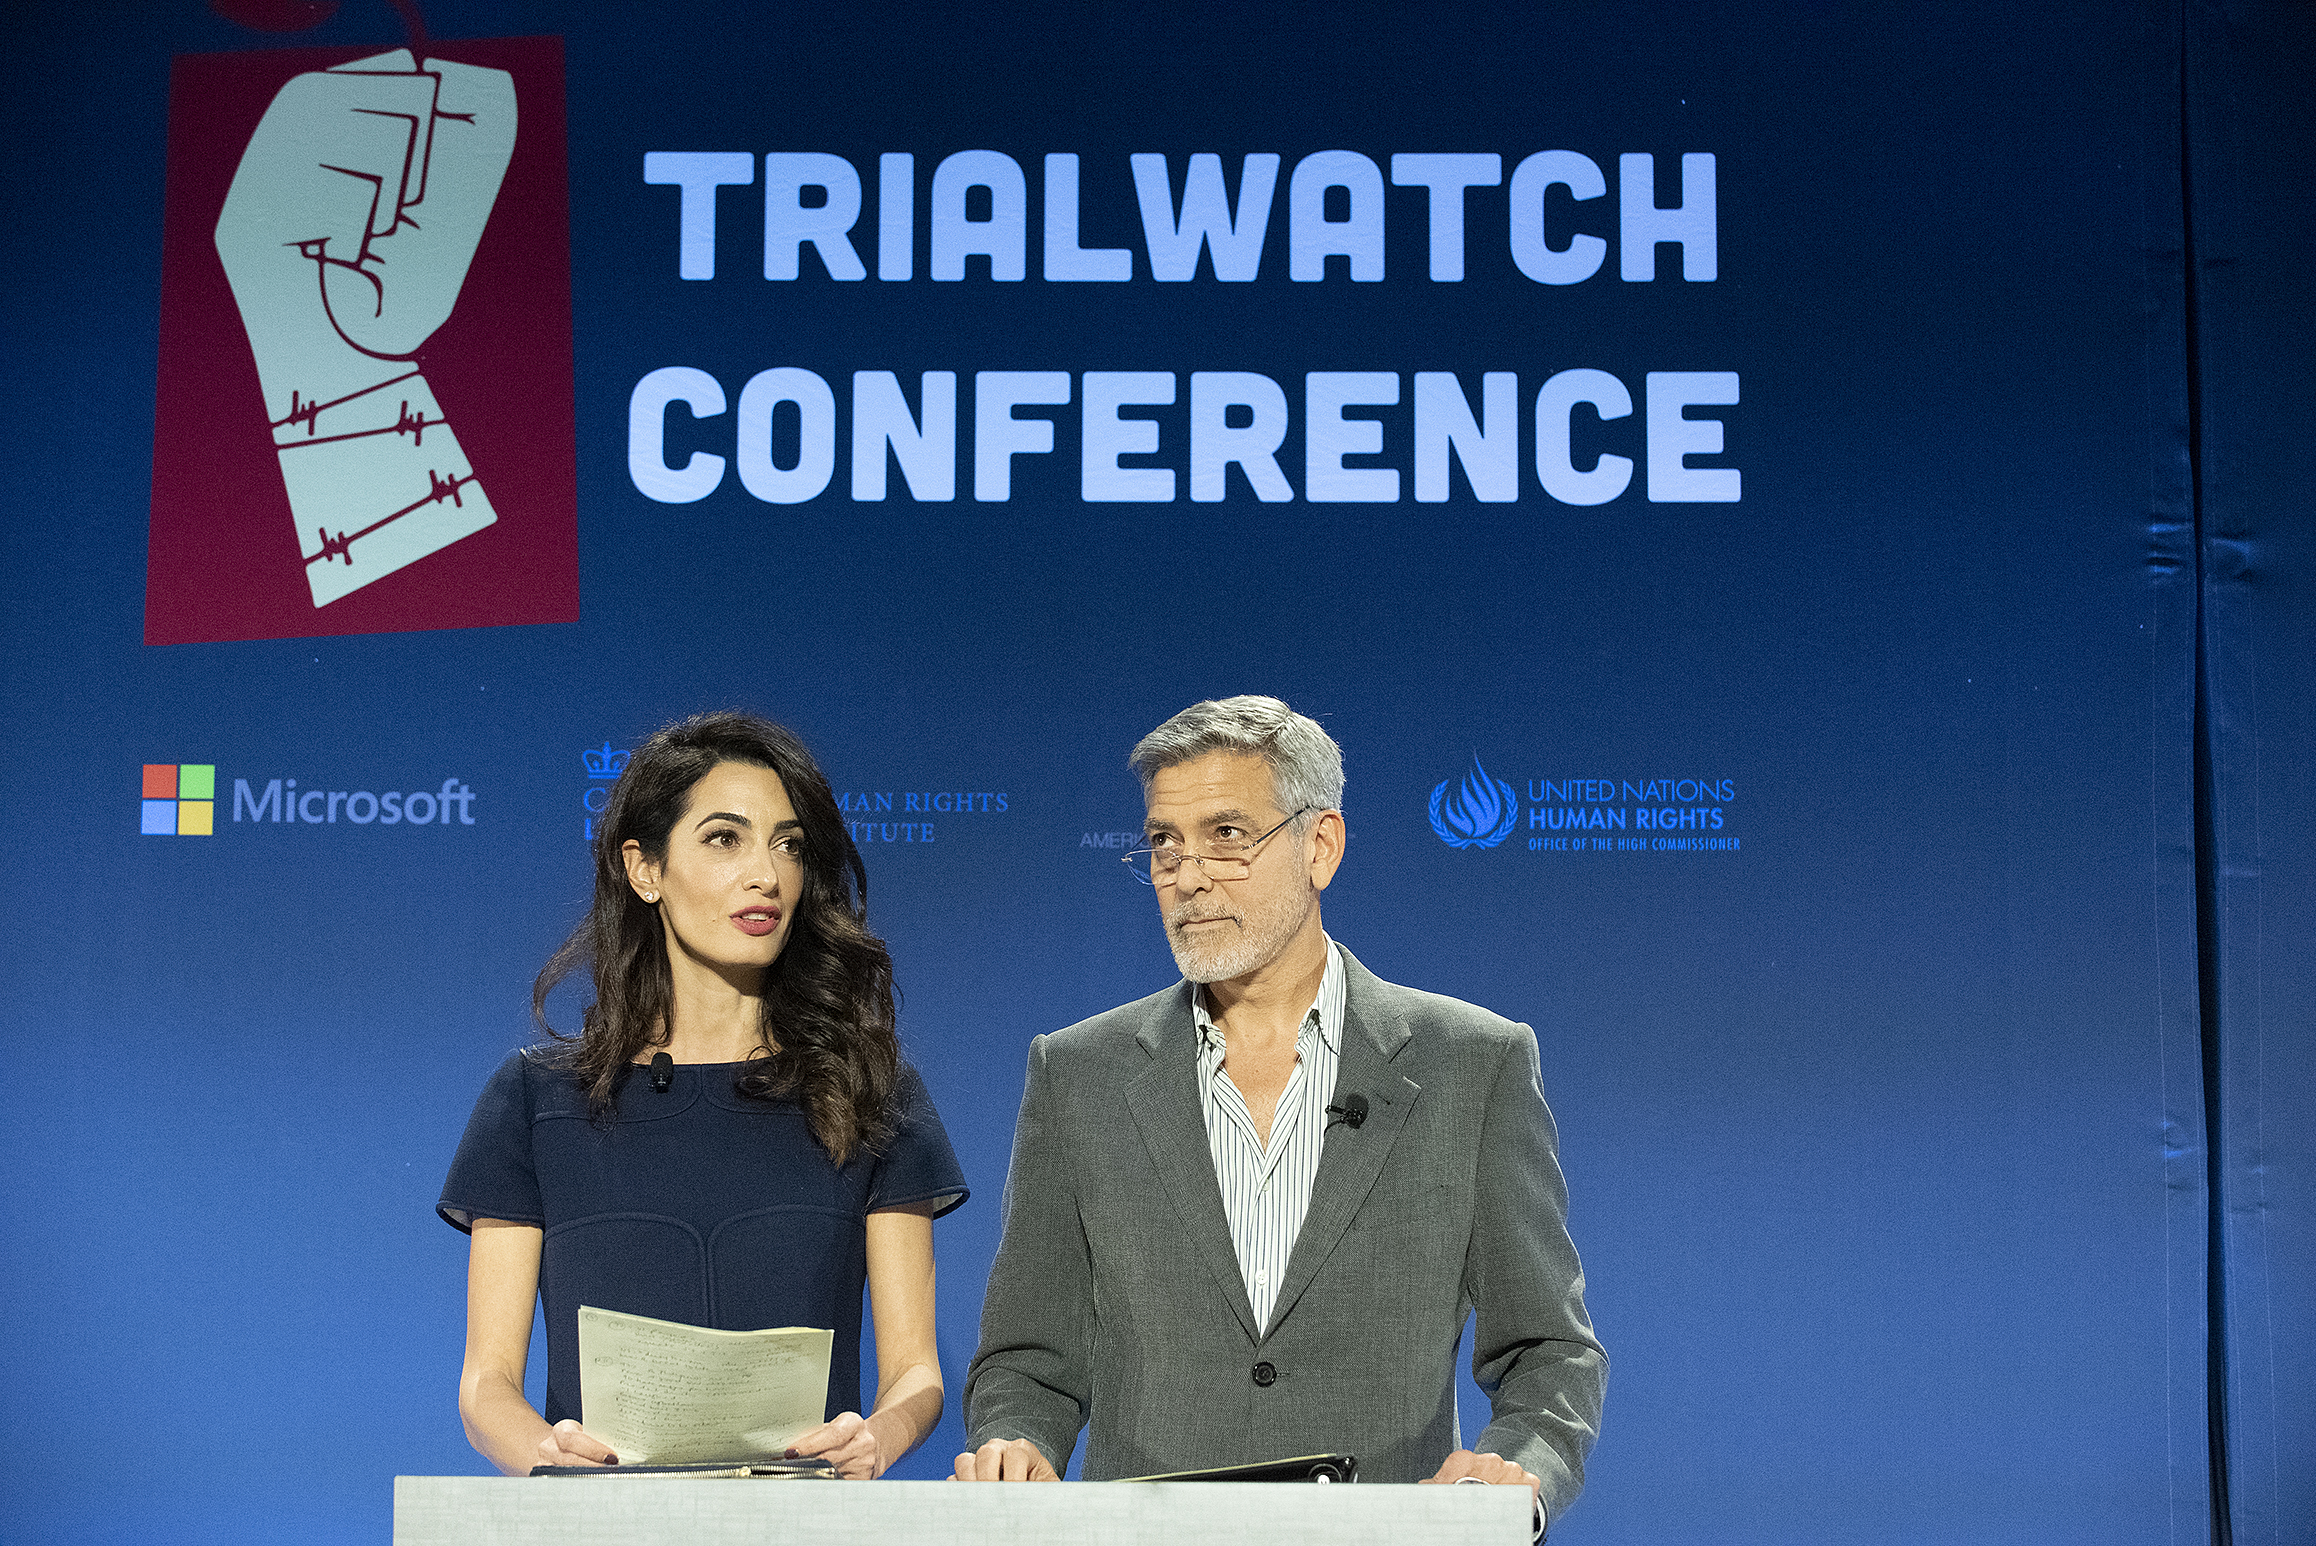 From left: Columbia Law School Visiting Professor and Clooney Foundation for Justice Co-President Amal Clooney, and Clooney Foundation for Justice Co-President George Clooney.